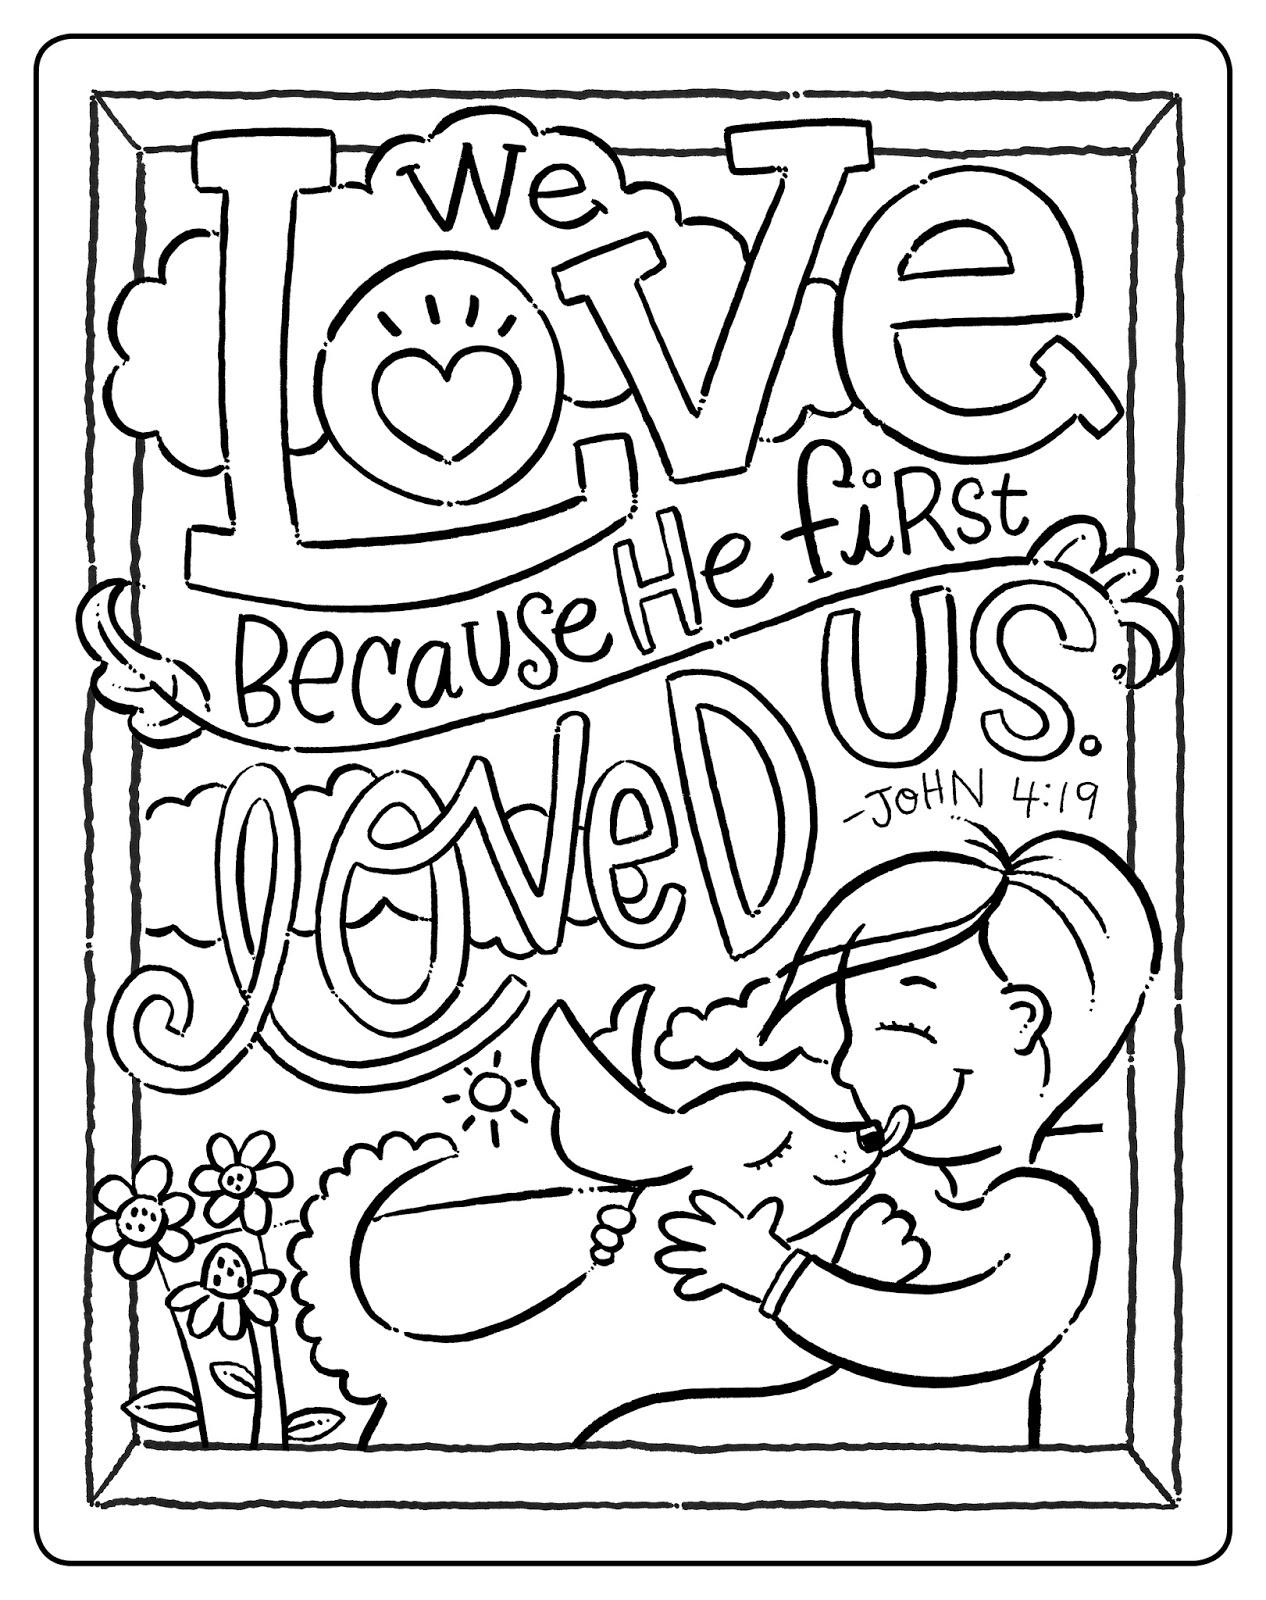 NOTE I Was Given A Copy Of This Coloring Book From The Publisher For Purpose Review